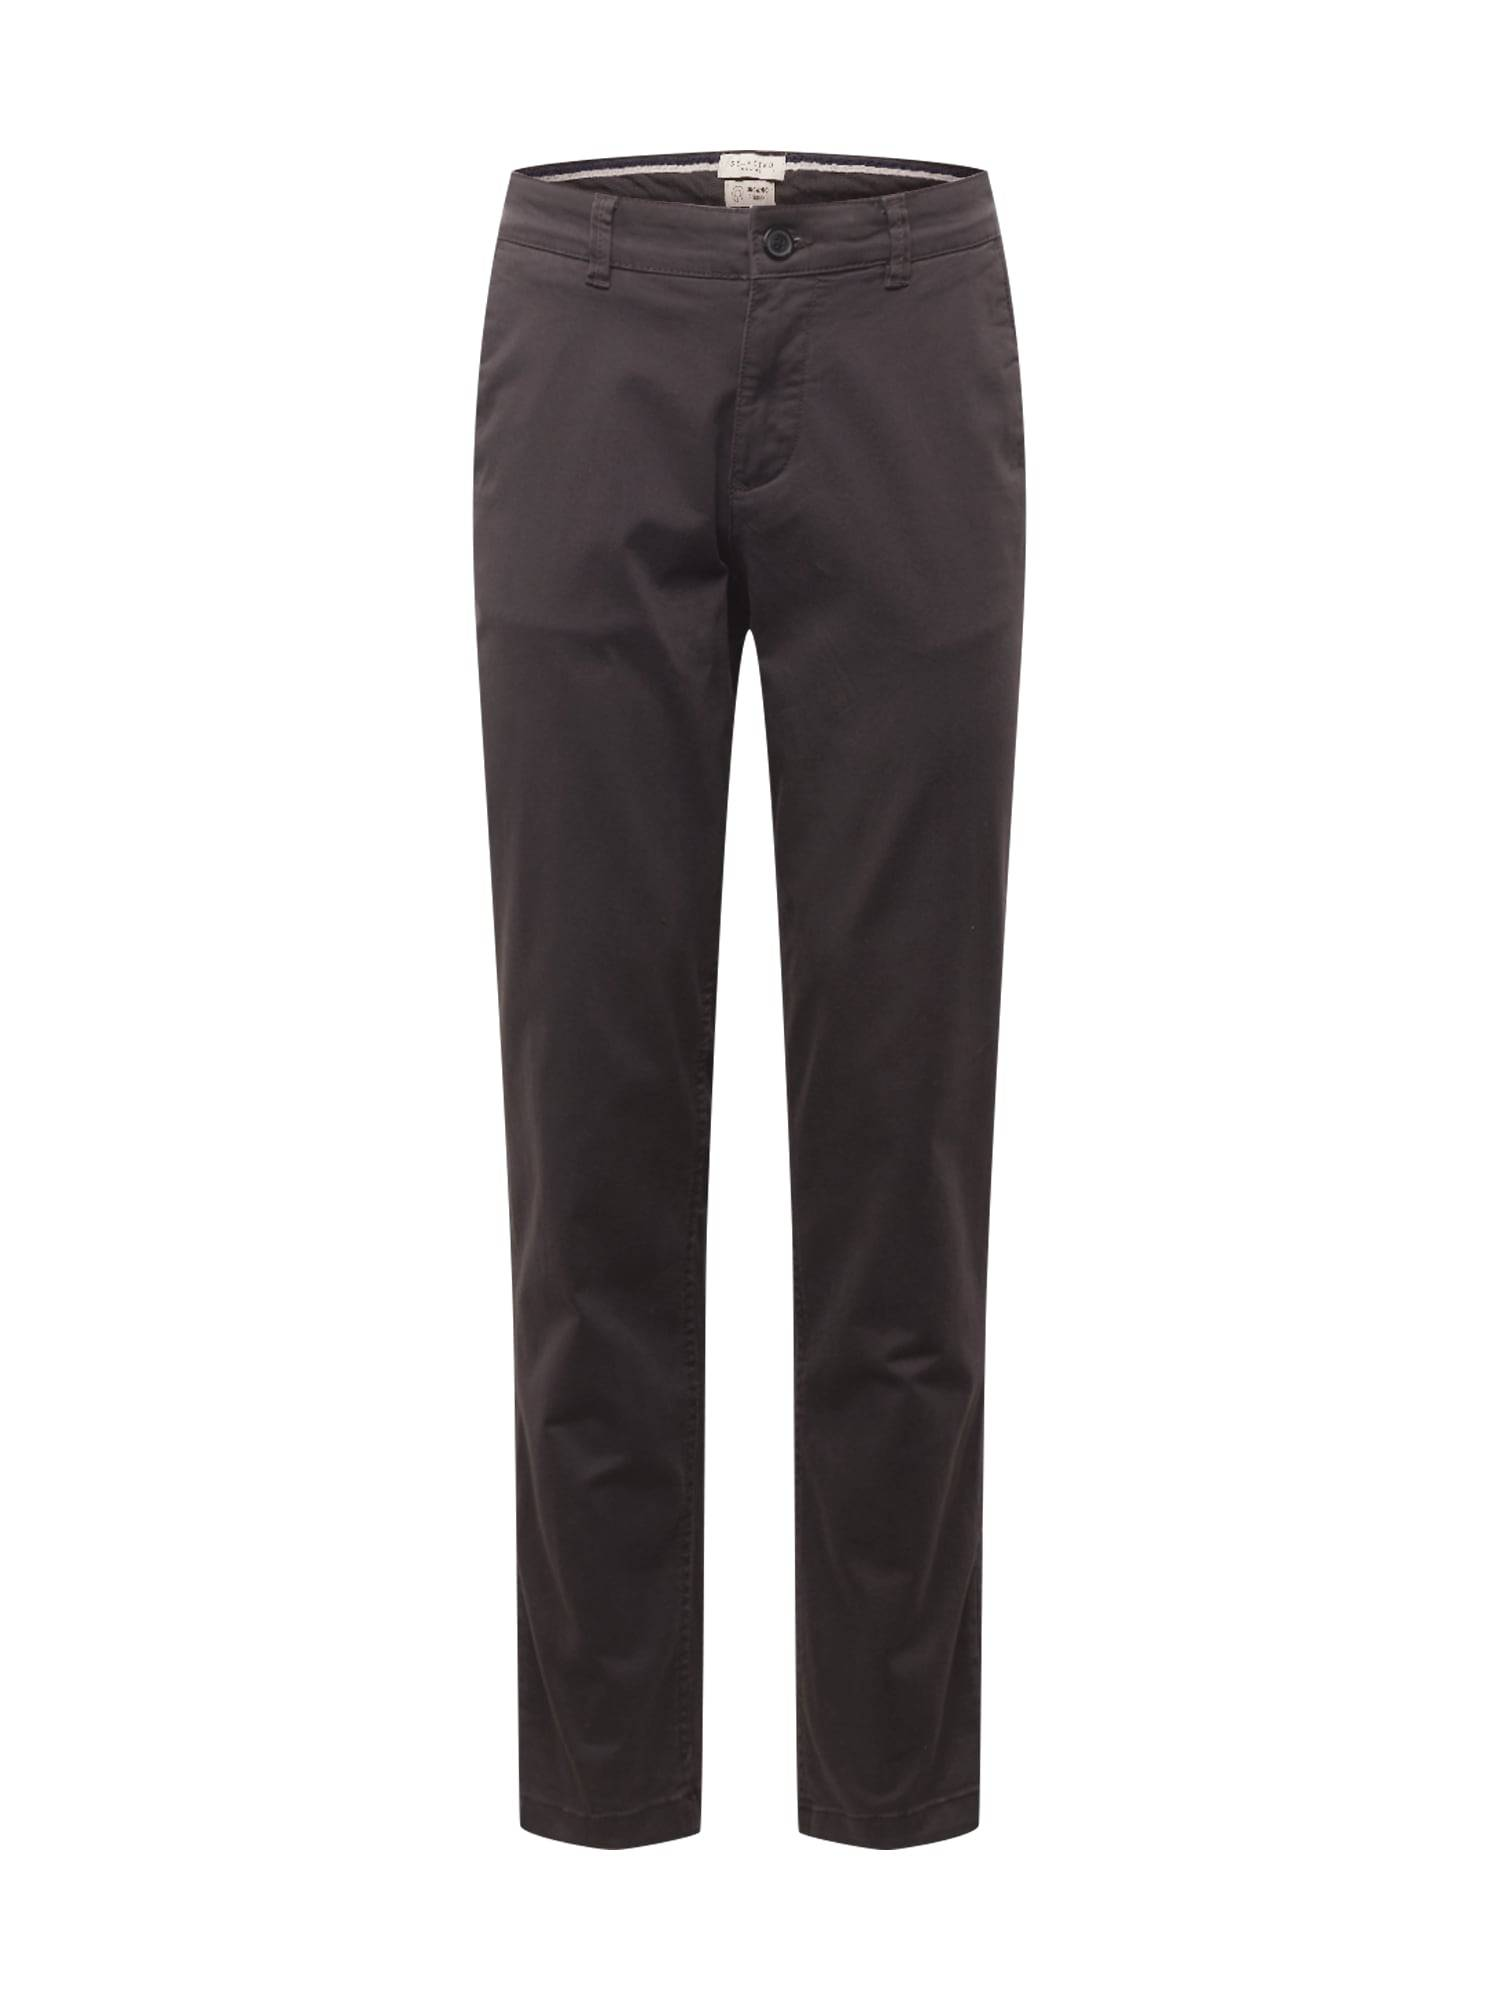 SELECTED HOMME Pantalon chino 'NEW PARIS'  - Gris - Taille: 29 - male